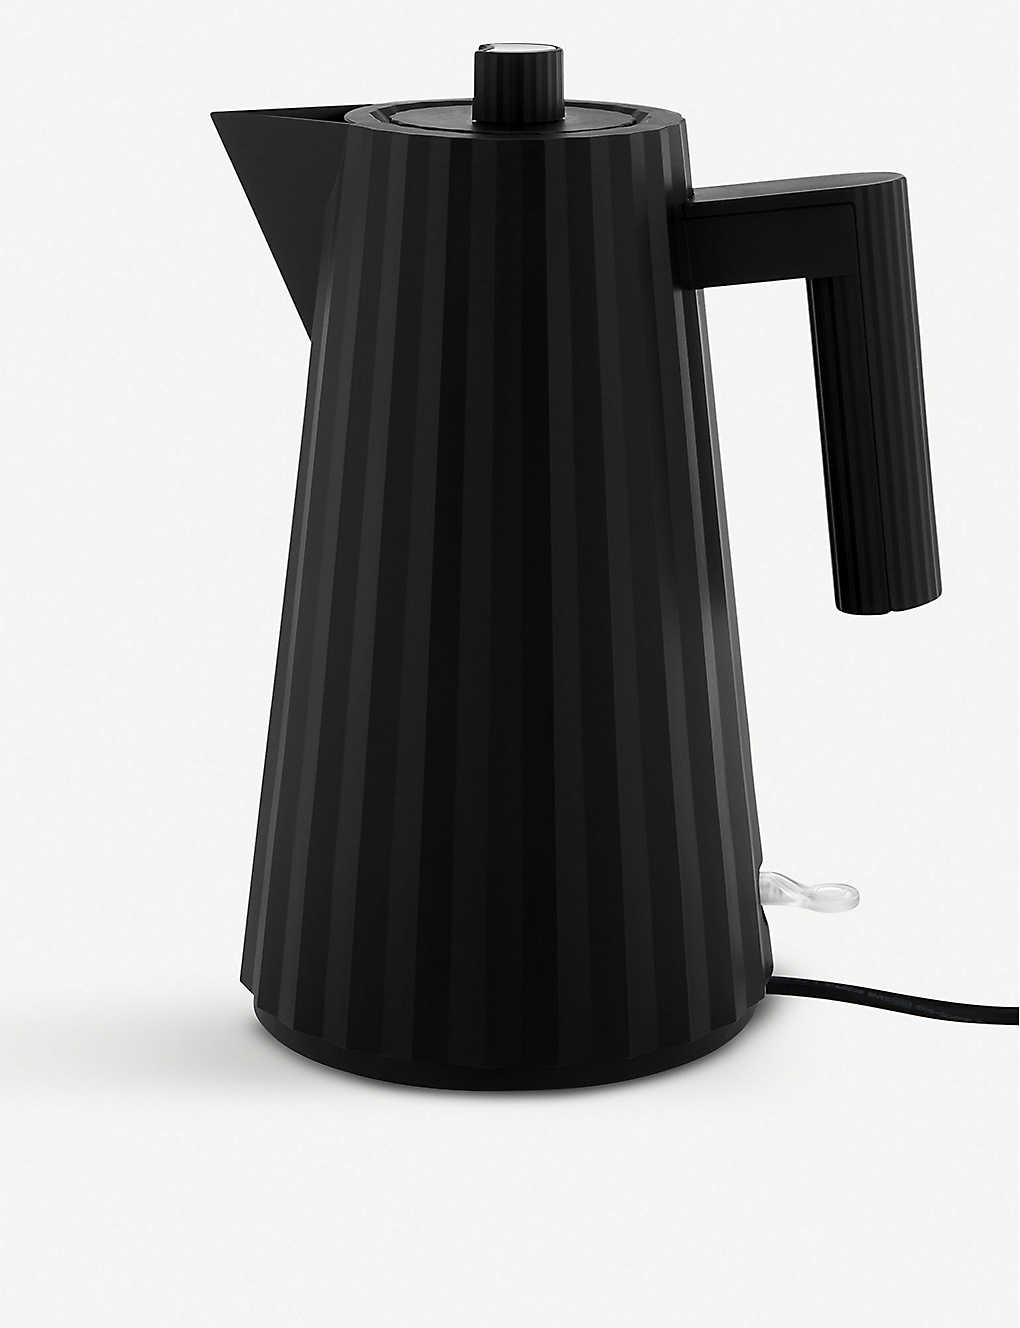 ALESSI: Plissé Electric Kettle